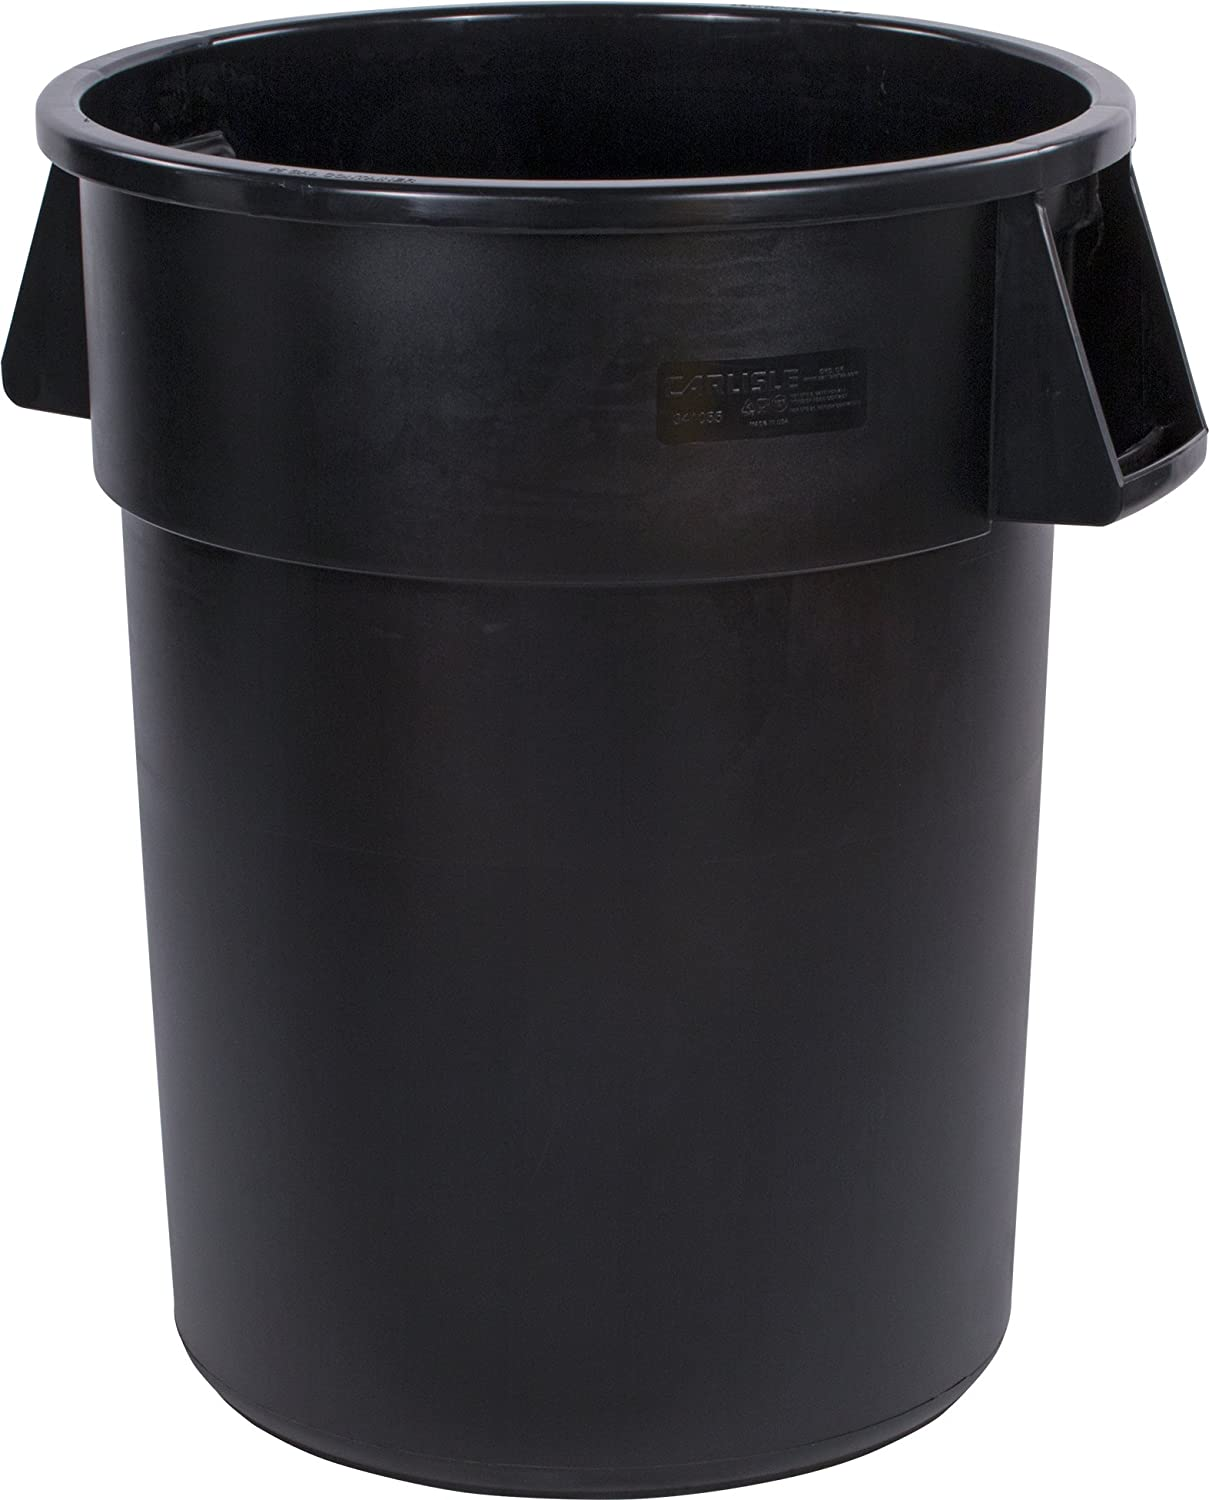 Carlisle 34105503 Bronco Round Waste Container Only, 55 Gallon, Black